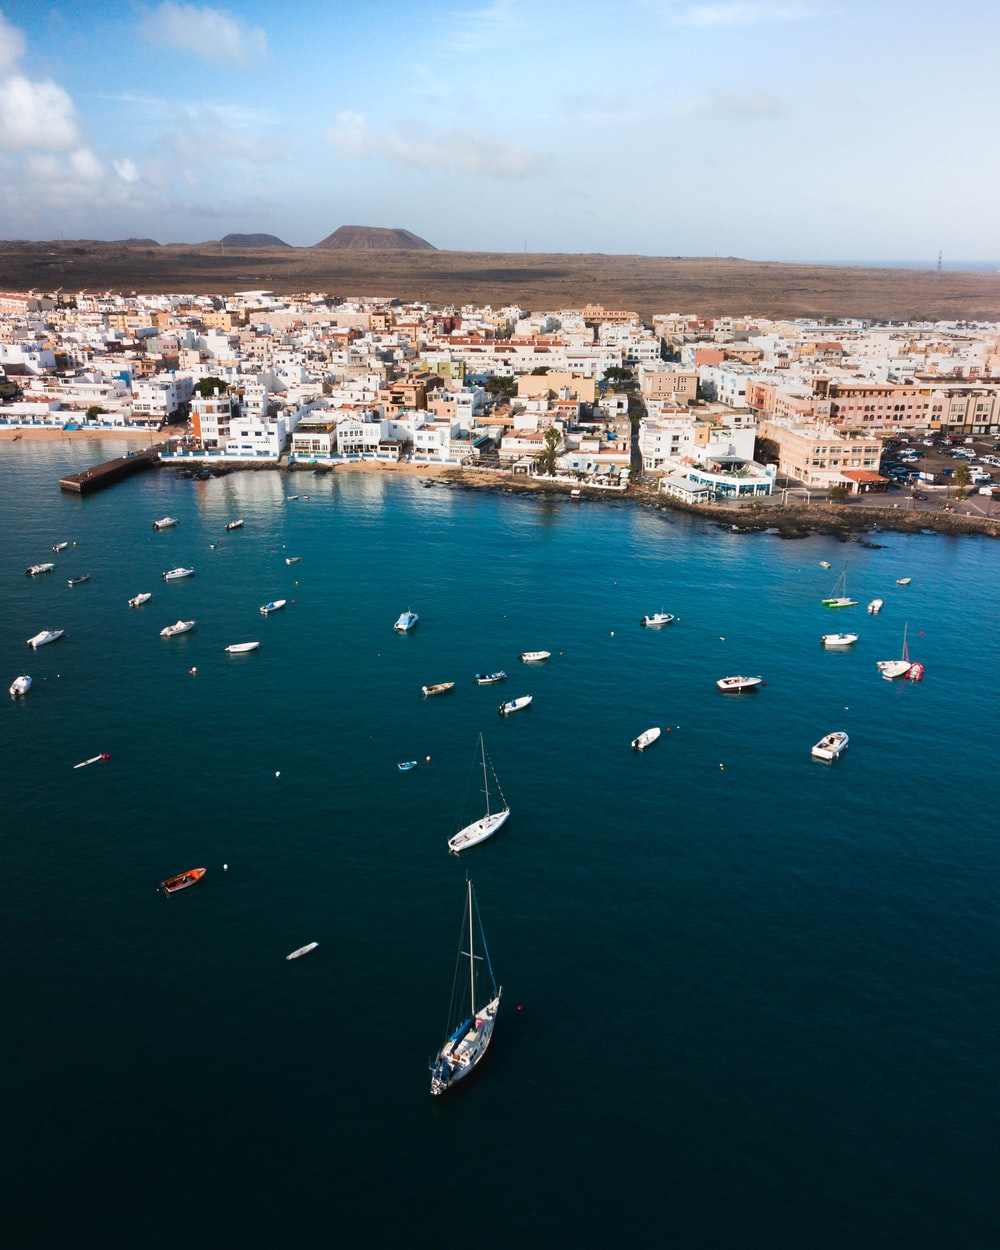 aerial view of boats on sea near city during daytime